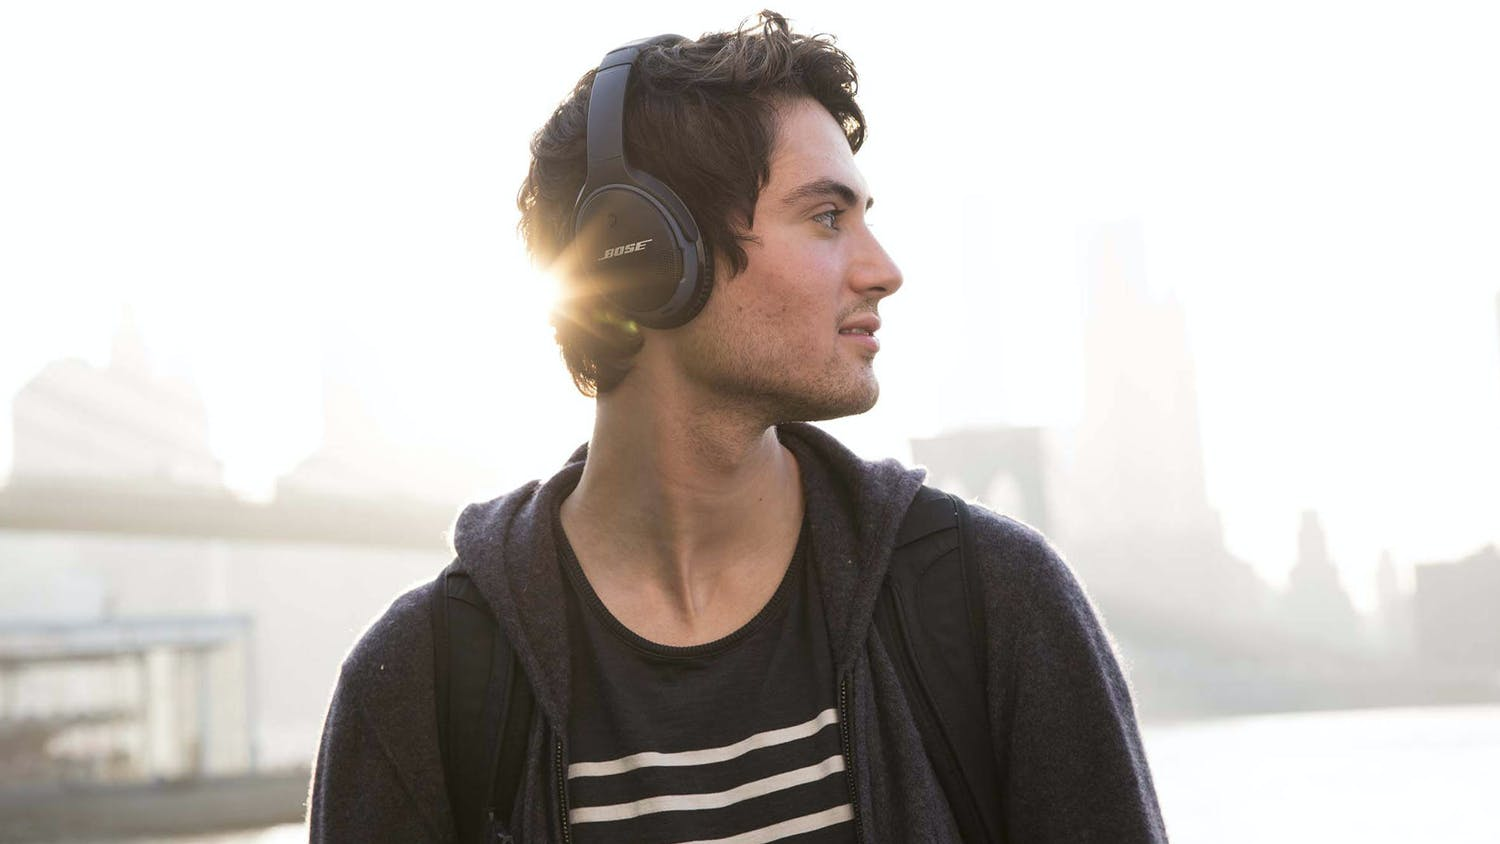 Bose SoundLink II Wireless Over-Ear Headphones